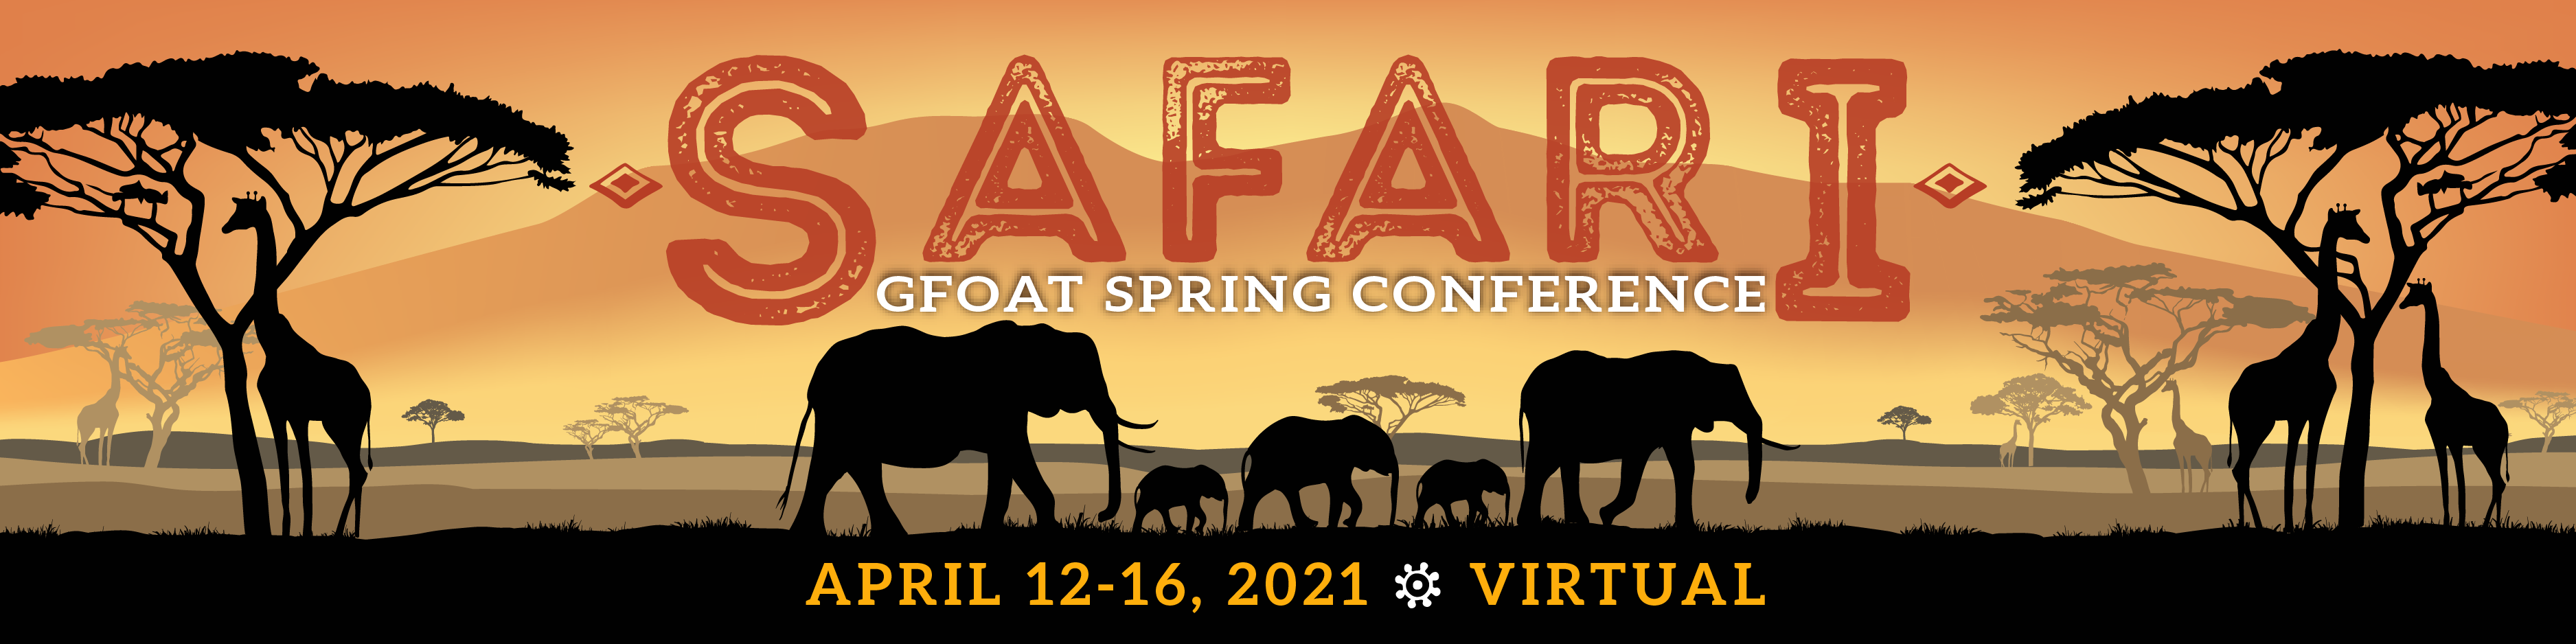 GFOAT Spring Conference